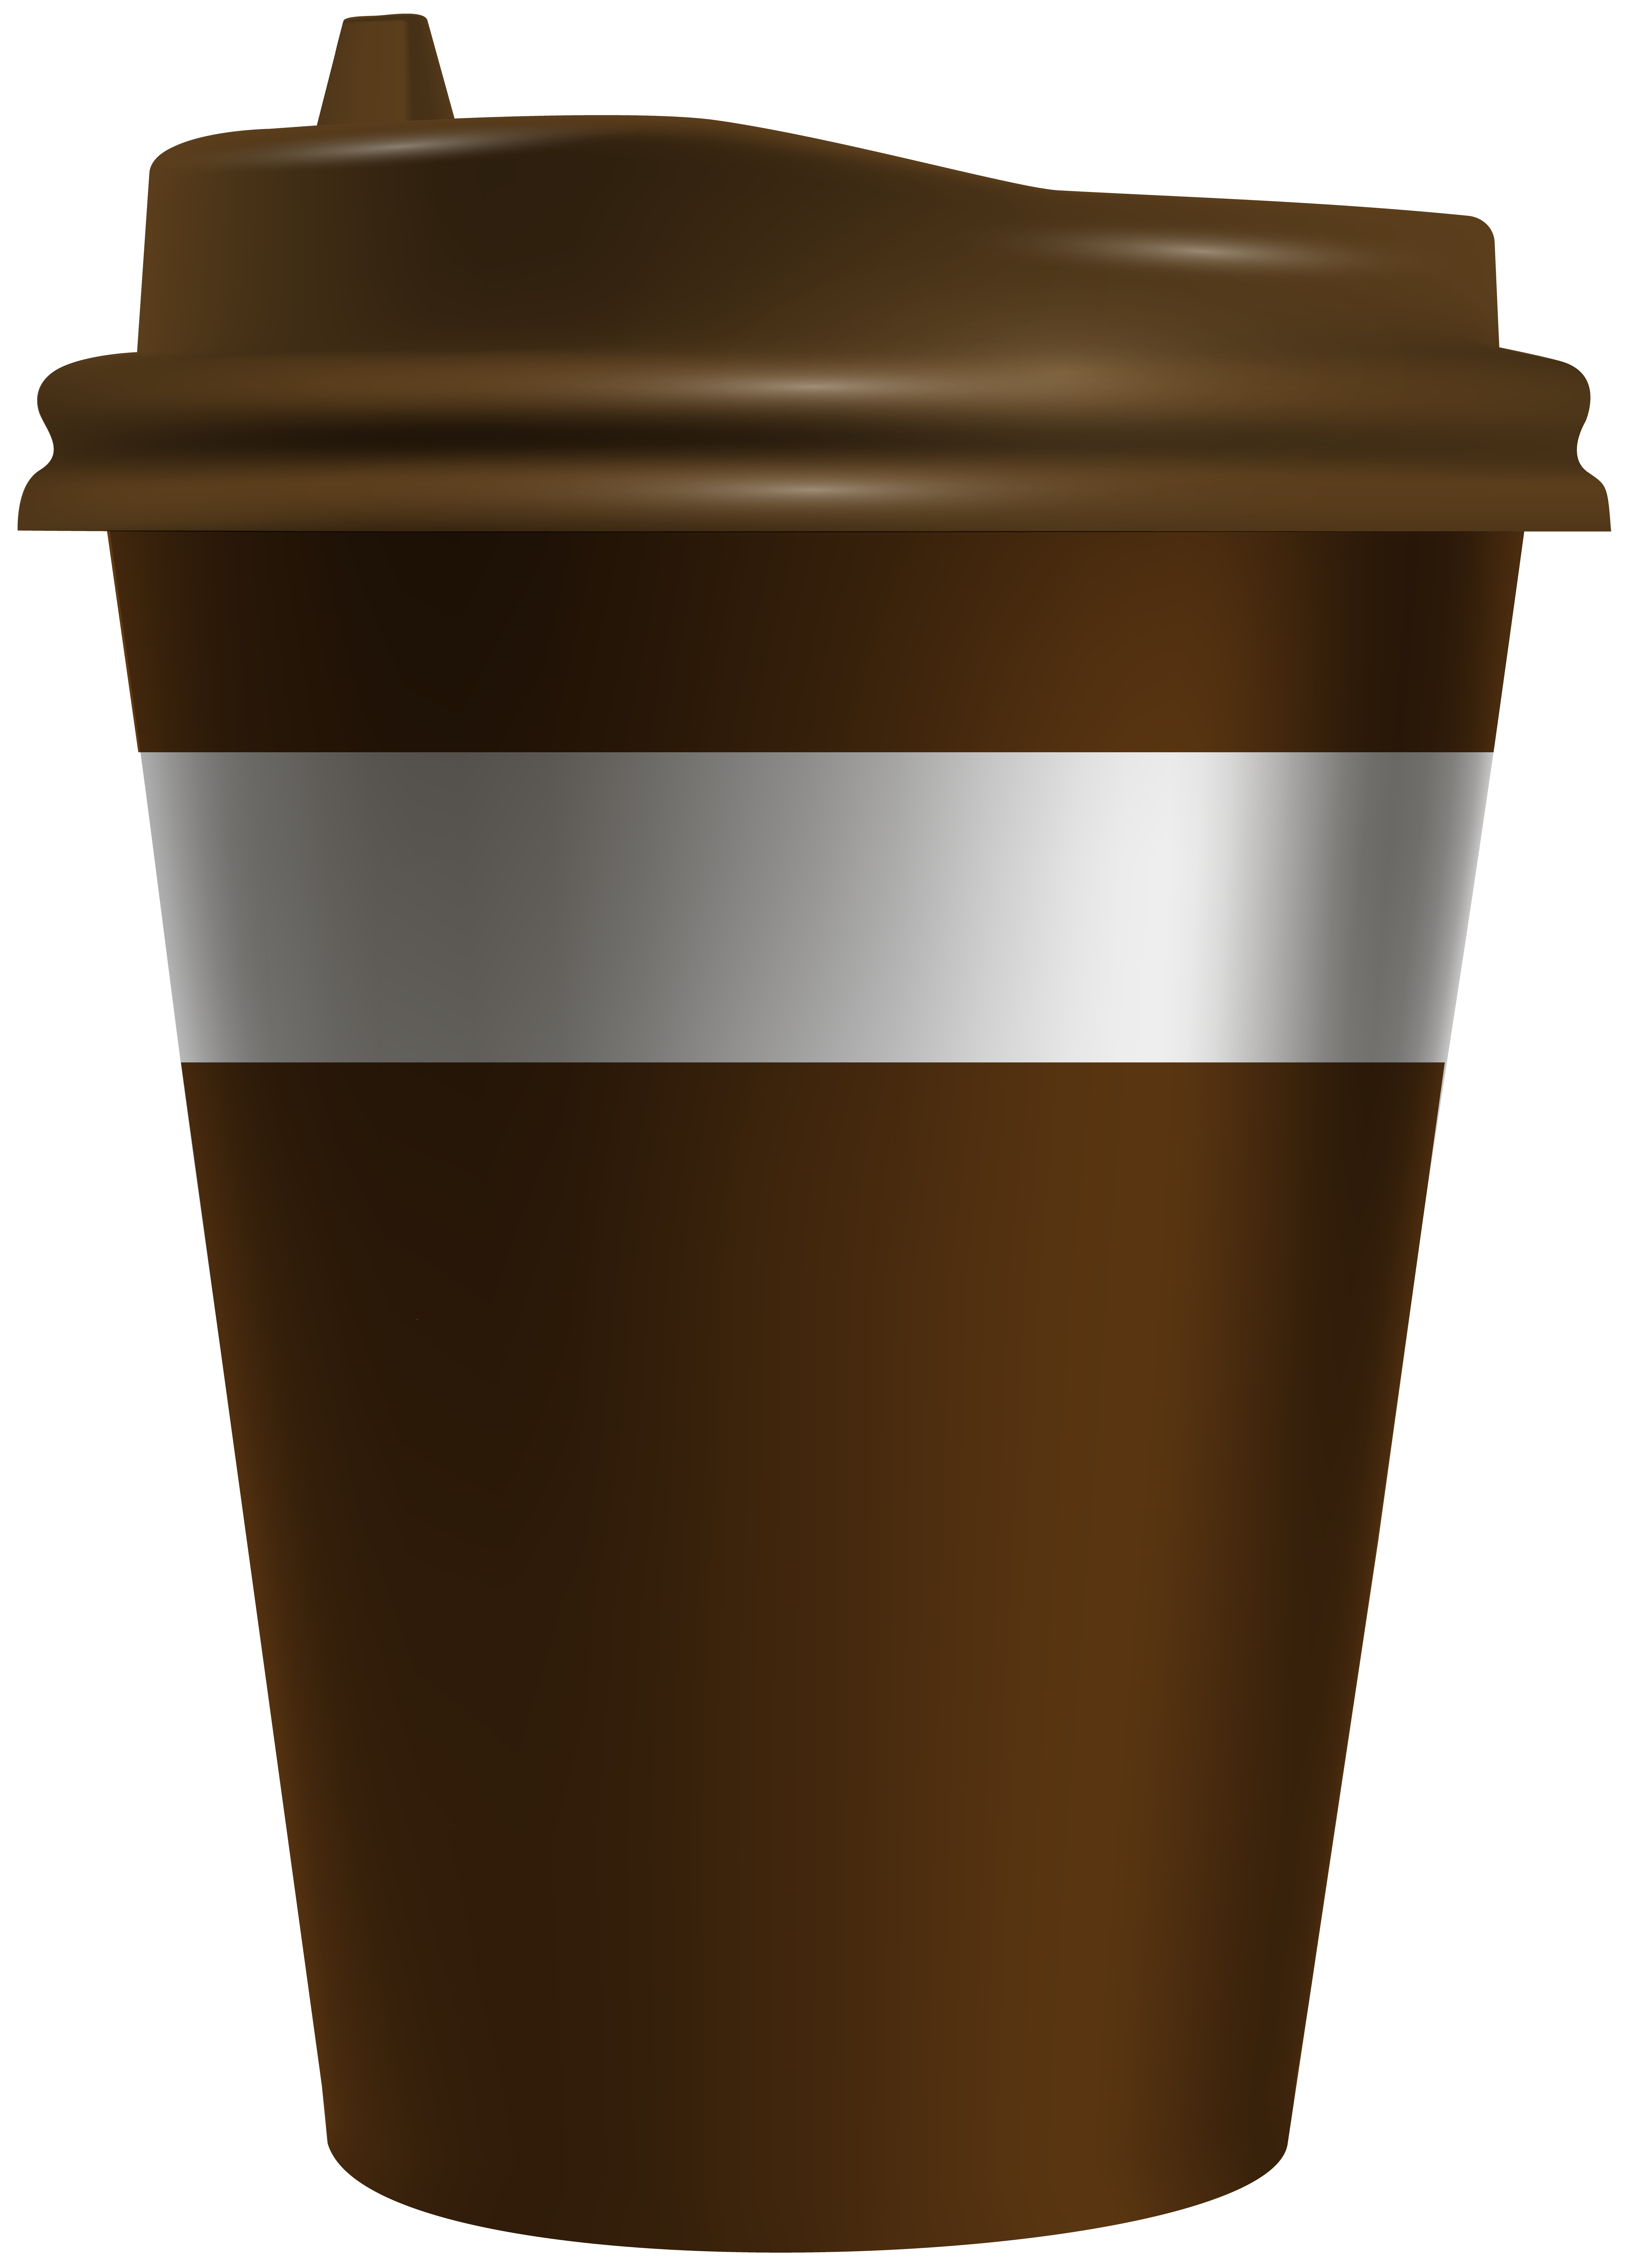 Coffee cup to go. Cups clipart plastics